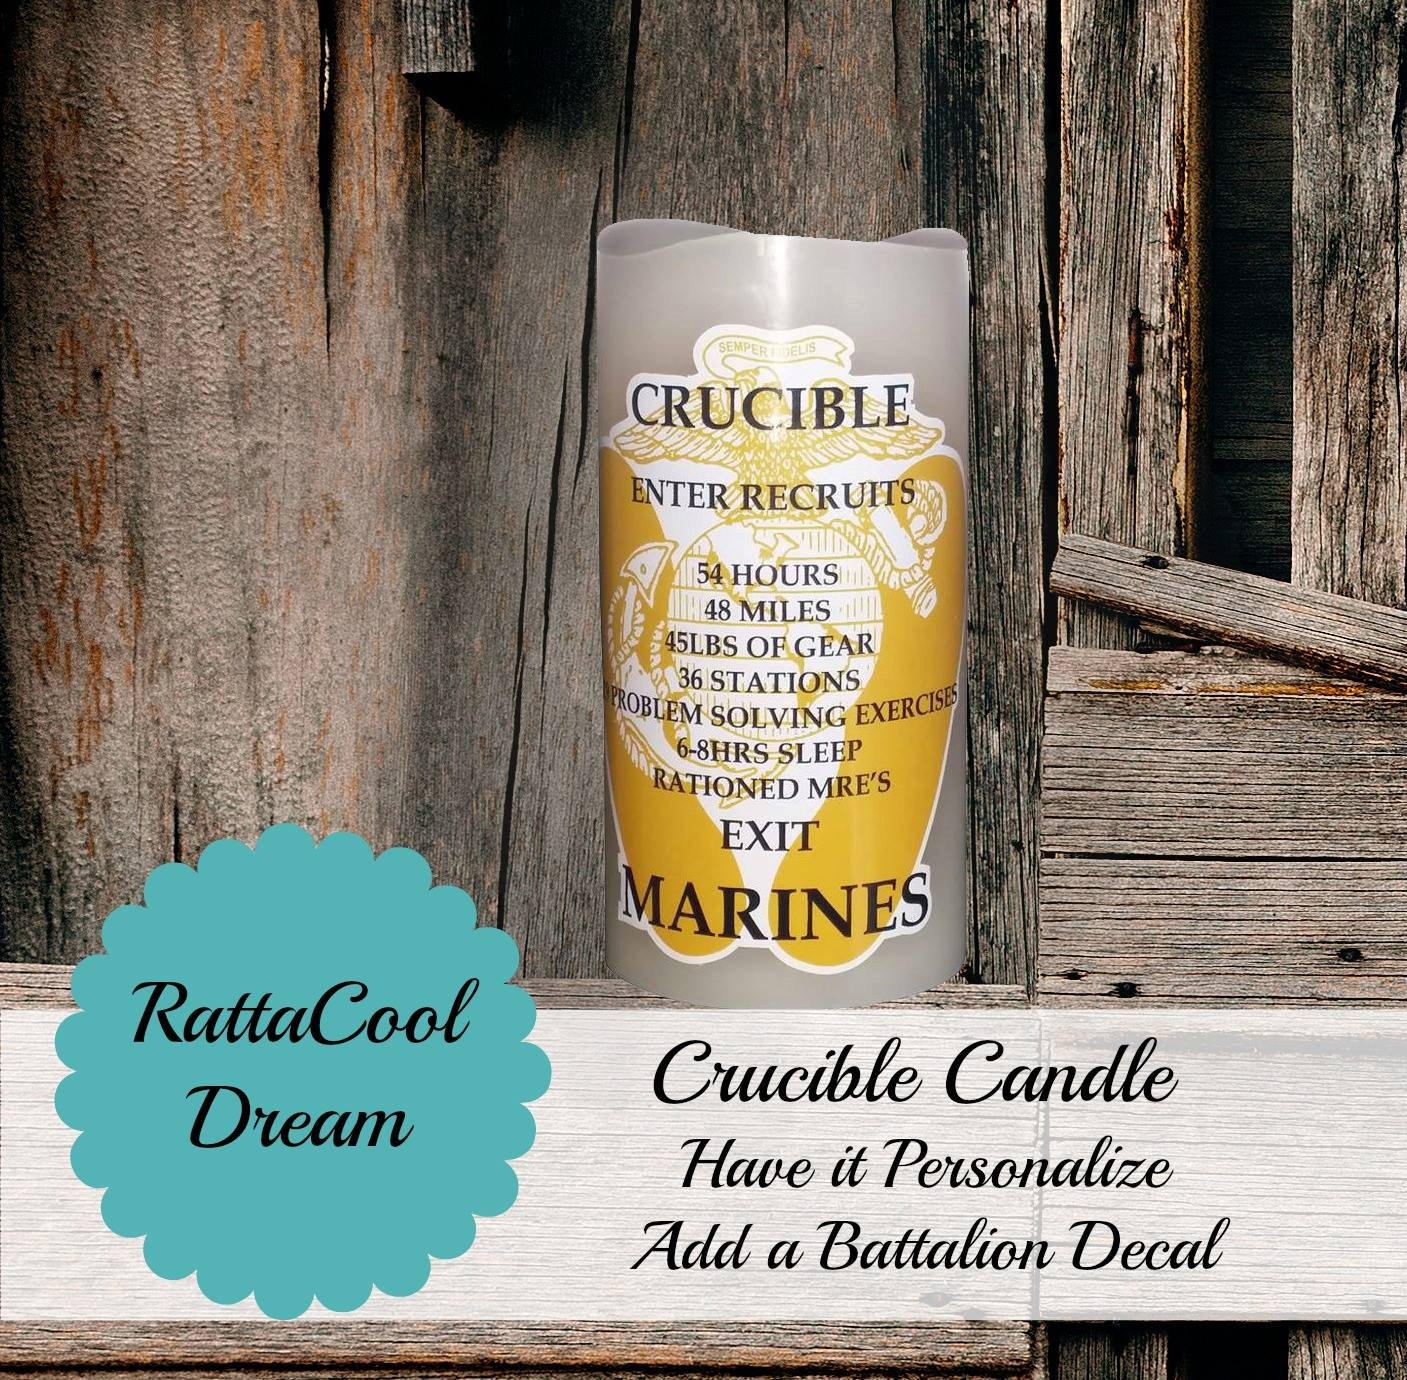 picture about Crucible Candle Printable referred to as Crucible Candle Usmc Culture - 12 months of Fresh new Drinking water